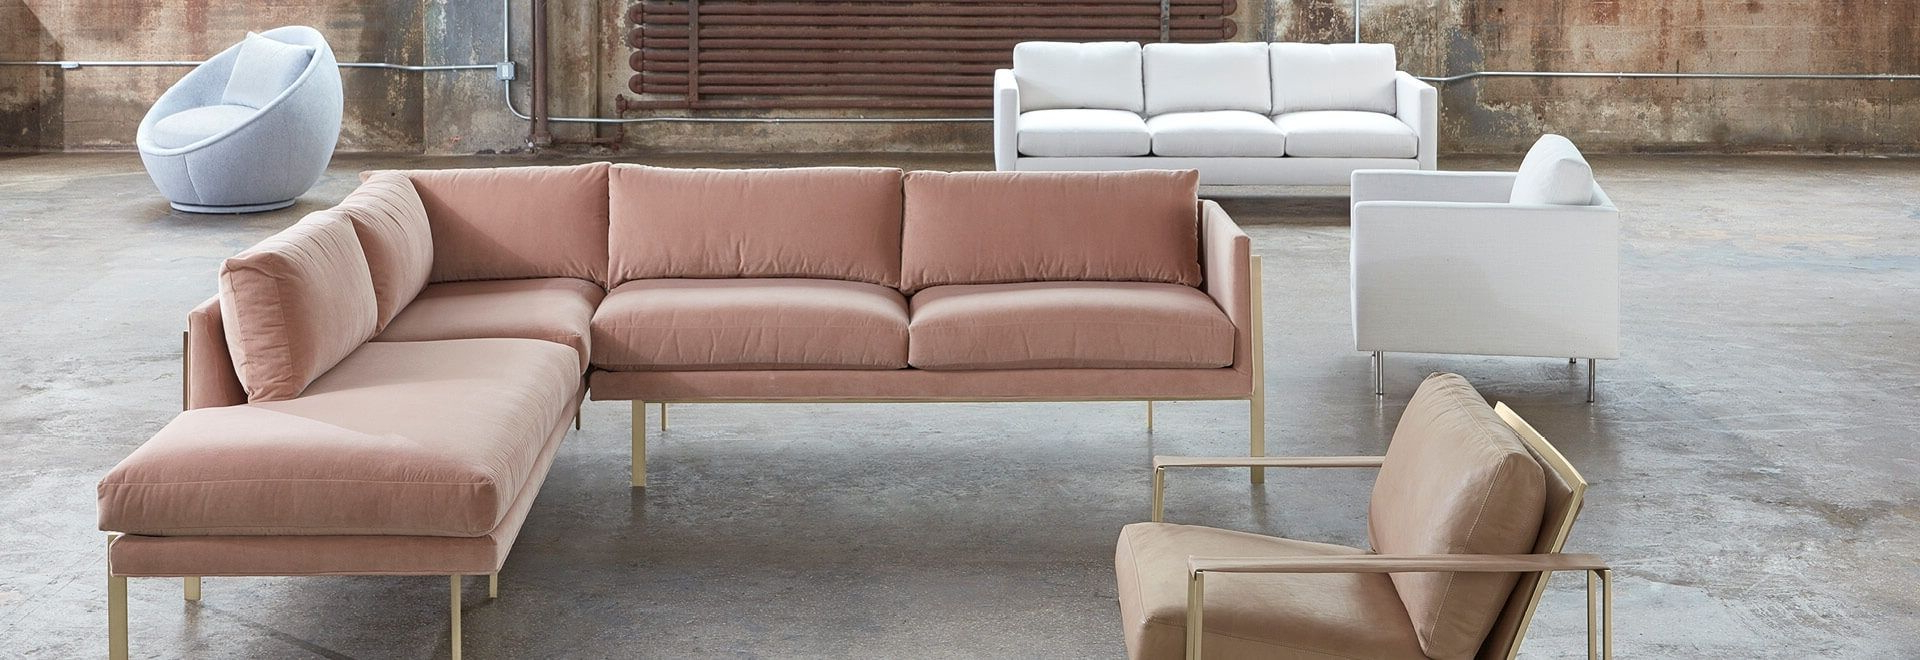 Widely Used Harper Down 3 Piece Sectionals Regarding Modern Sectional Sofas For Apartments At Abc Home & Carpet (View 6 of 20)